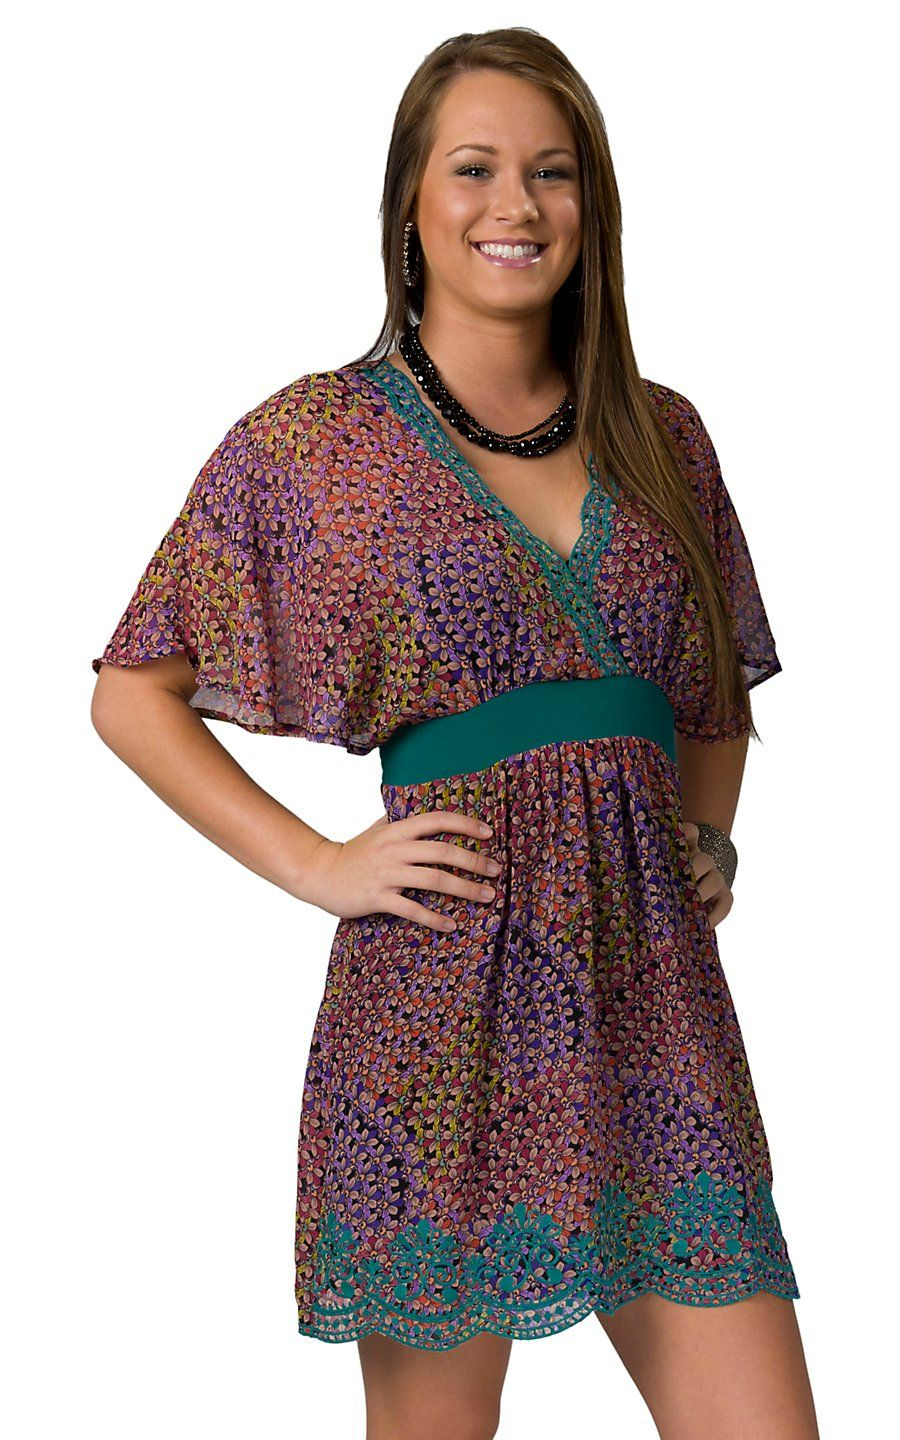 Flying Tomato® Women's Multicolored Floral Print w/ Turquoise Embroidery Short Sleeve Kimono Dress $44